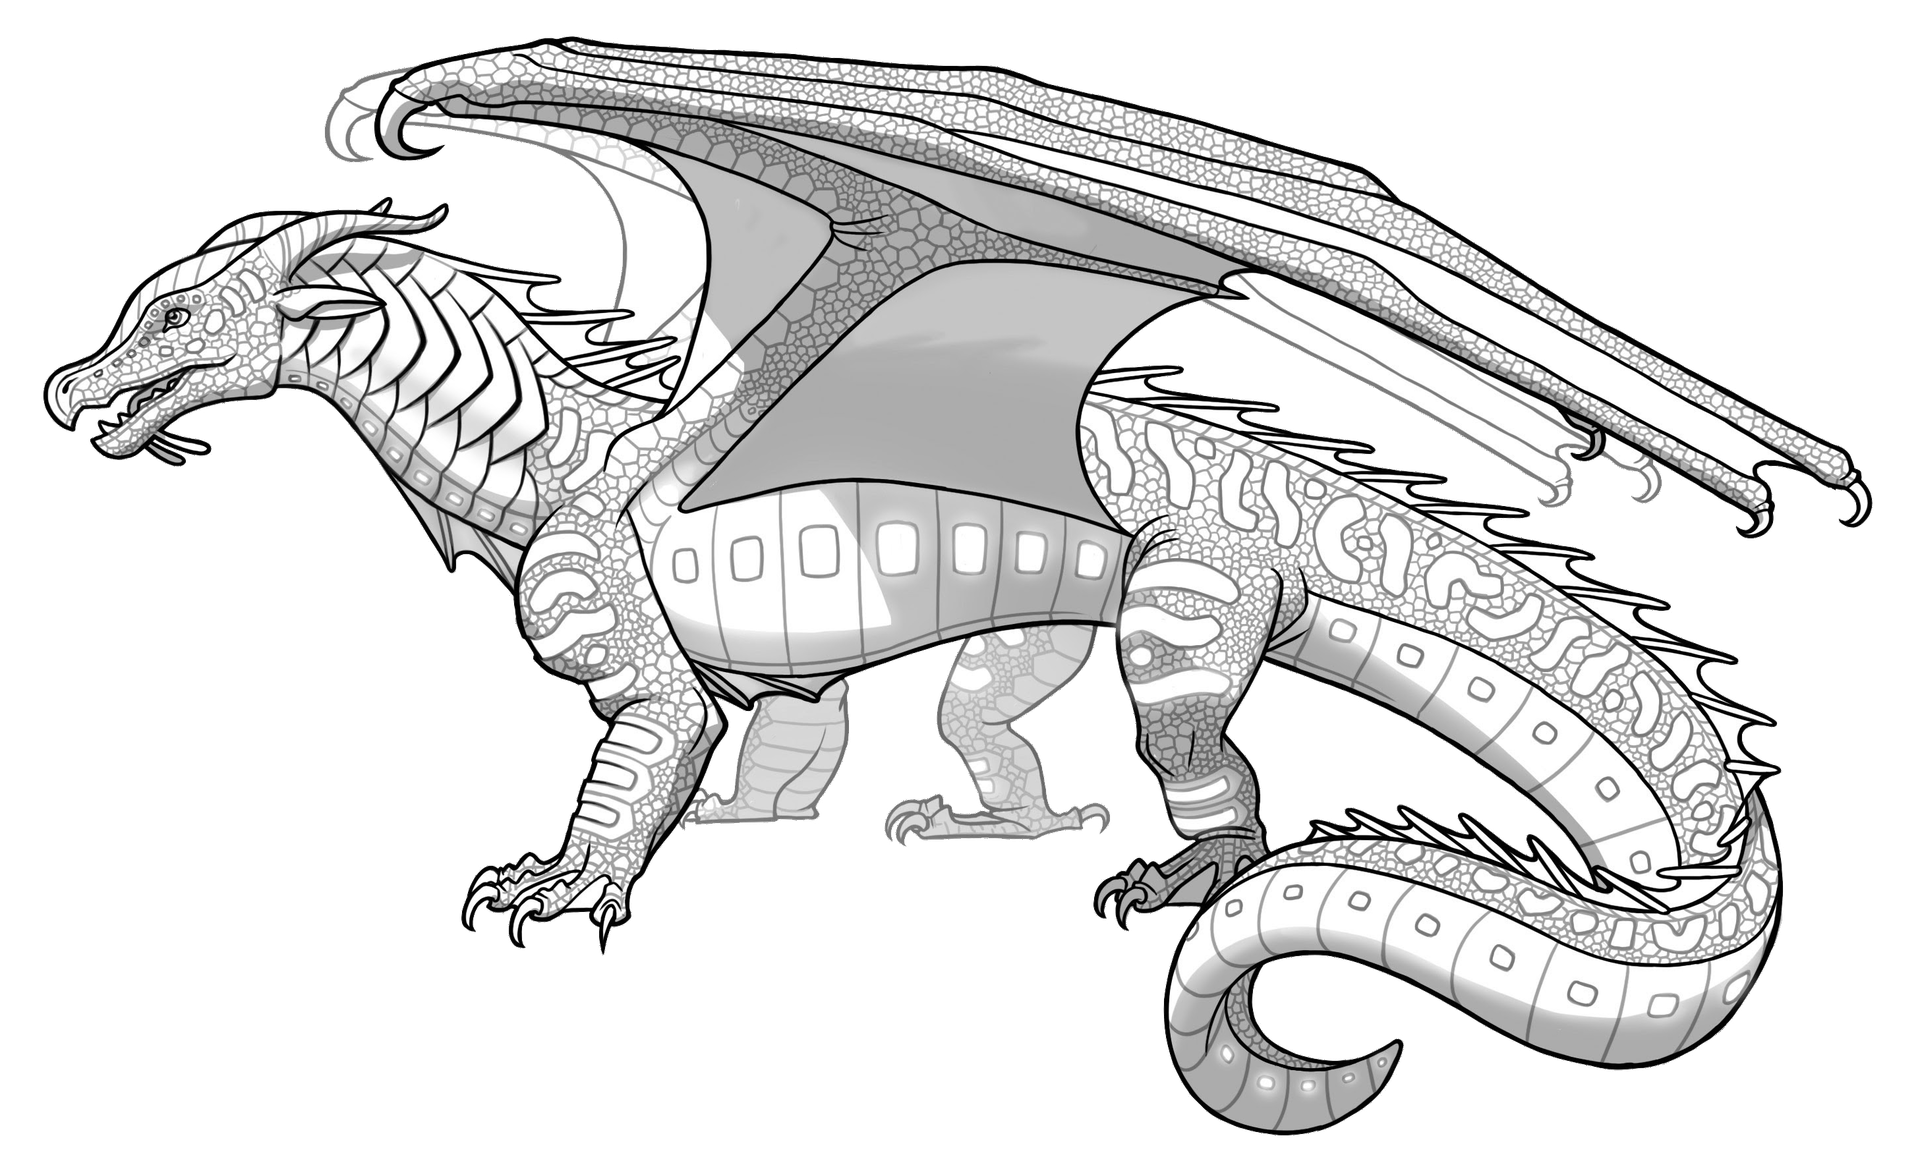 Wings Of Fire Color Edits Complete Requests Original Line Arts Wings Of Fire Dragons Wings Of Fire Dragon Coloring Page